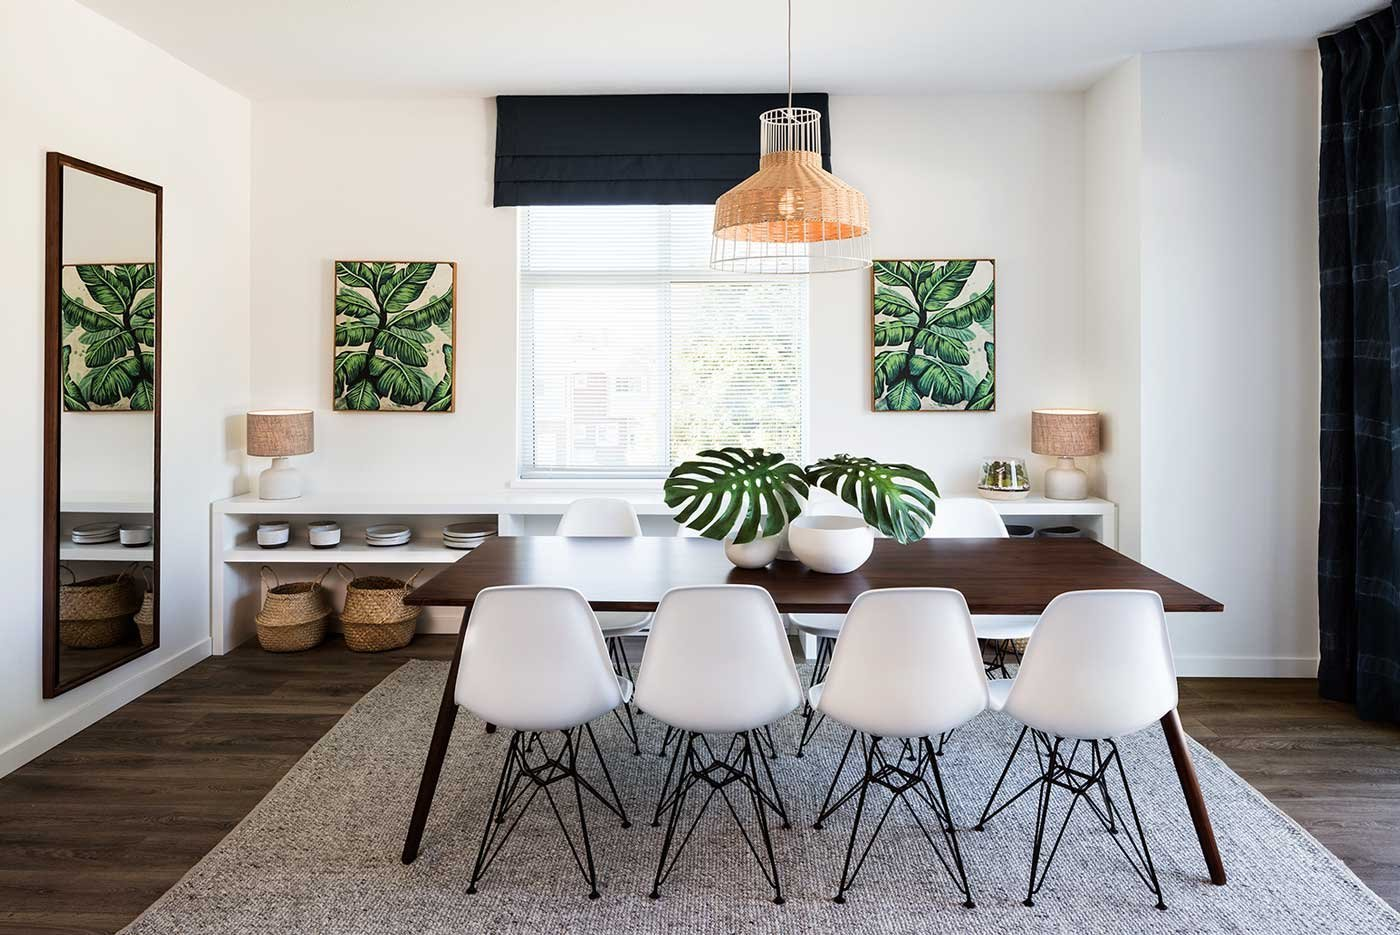 Dining Area - 18505 Laurensen Place, Surrey, BC V4N 6R7, Canada!